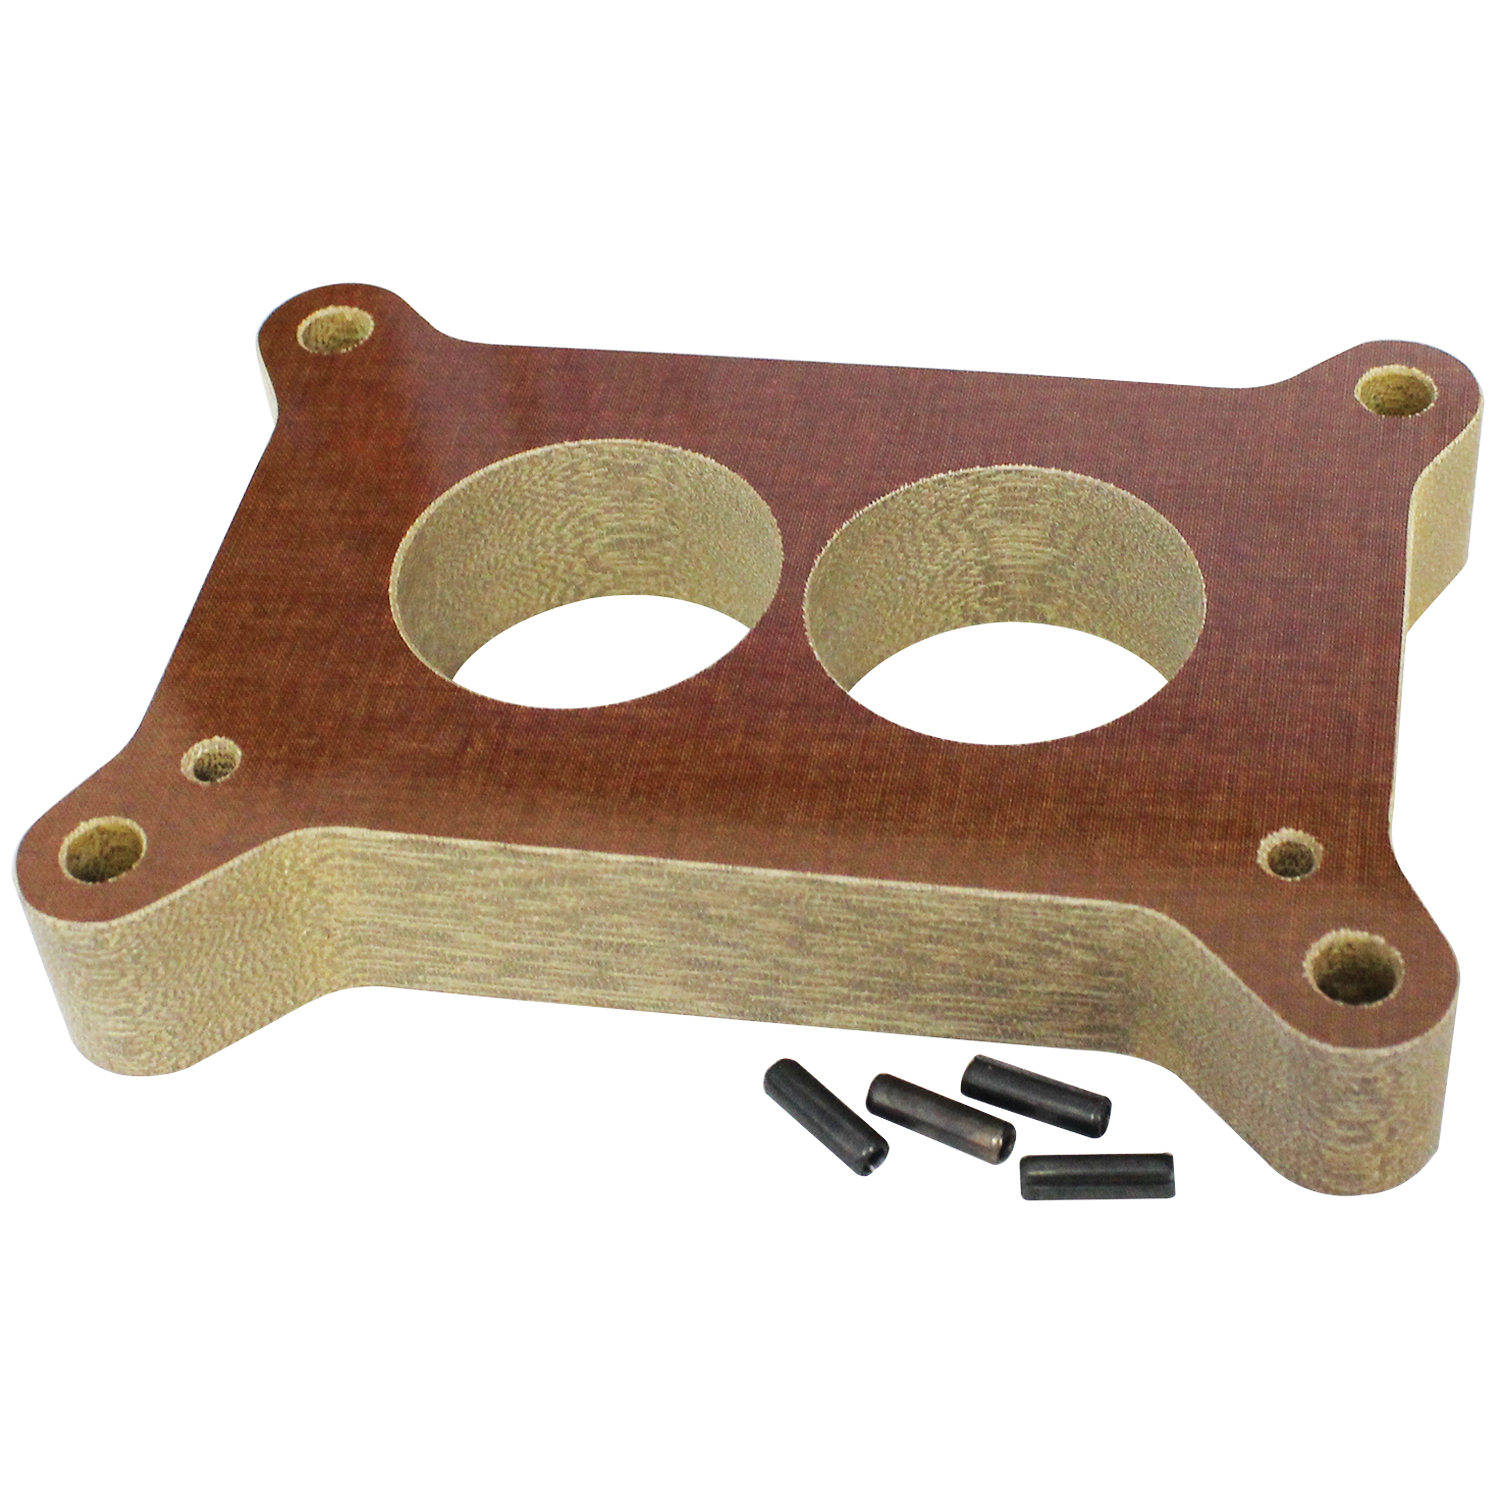 Jomar, Phenolic Carb Spacer, Holley 2300 2bbl , 1